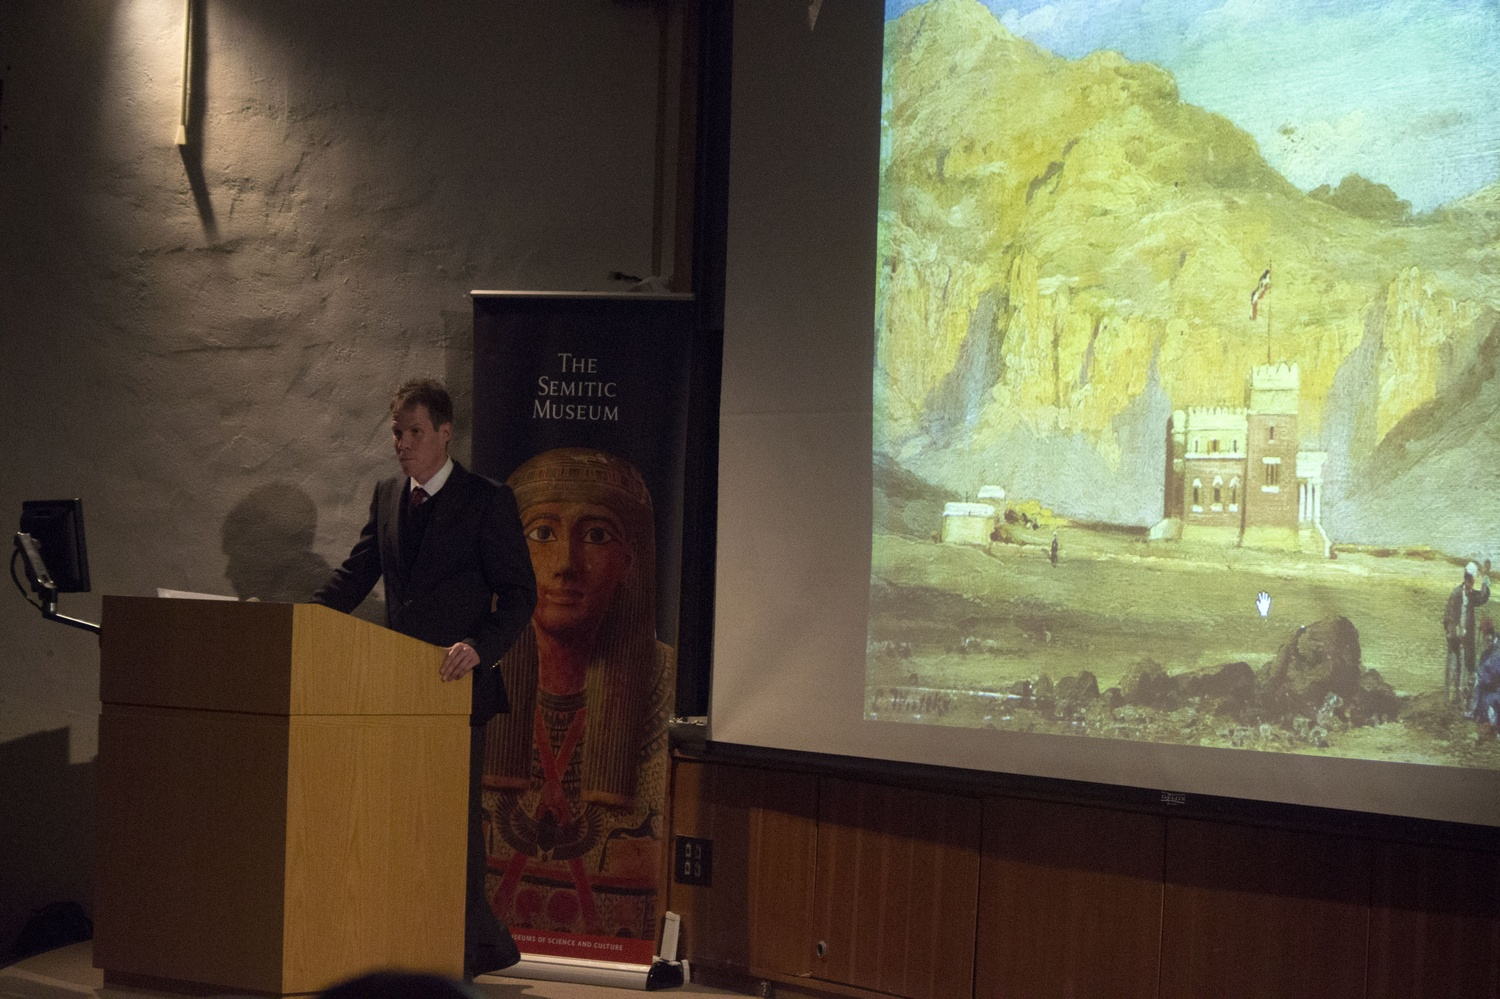 Thomas Gertzen speaks about German archaeological expeditions in Egypt around the time of World War I, and the possible anti-Semitic currents within German archaeology swirling around the iconic bust of Queen Nefertiti. The event was hosted by the Harvard Semitic Museum.